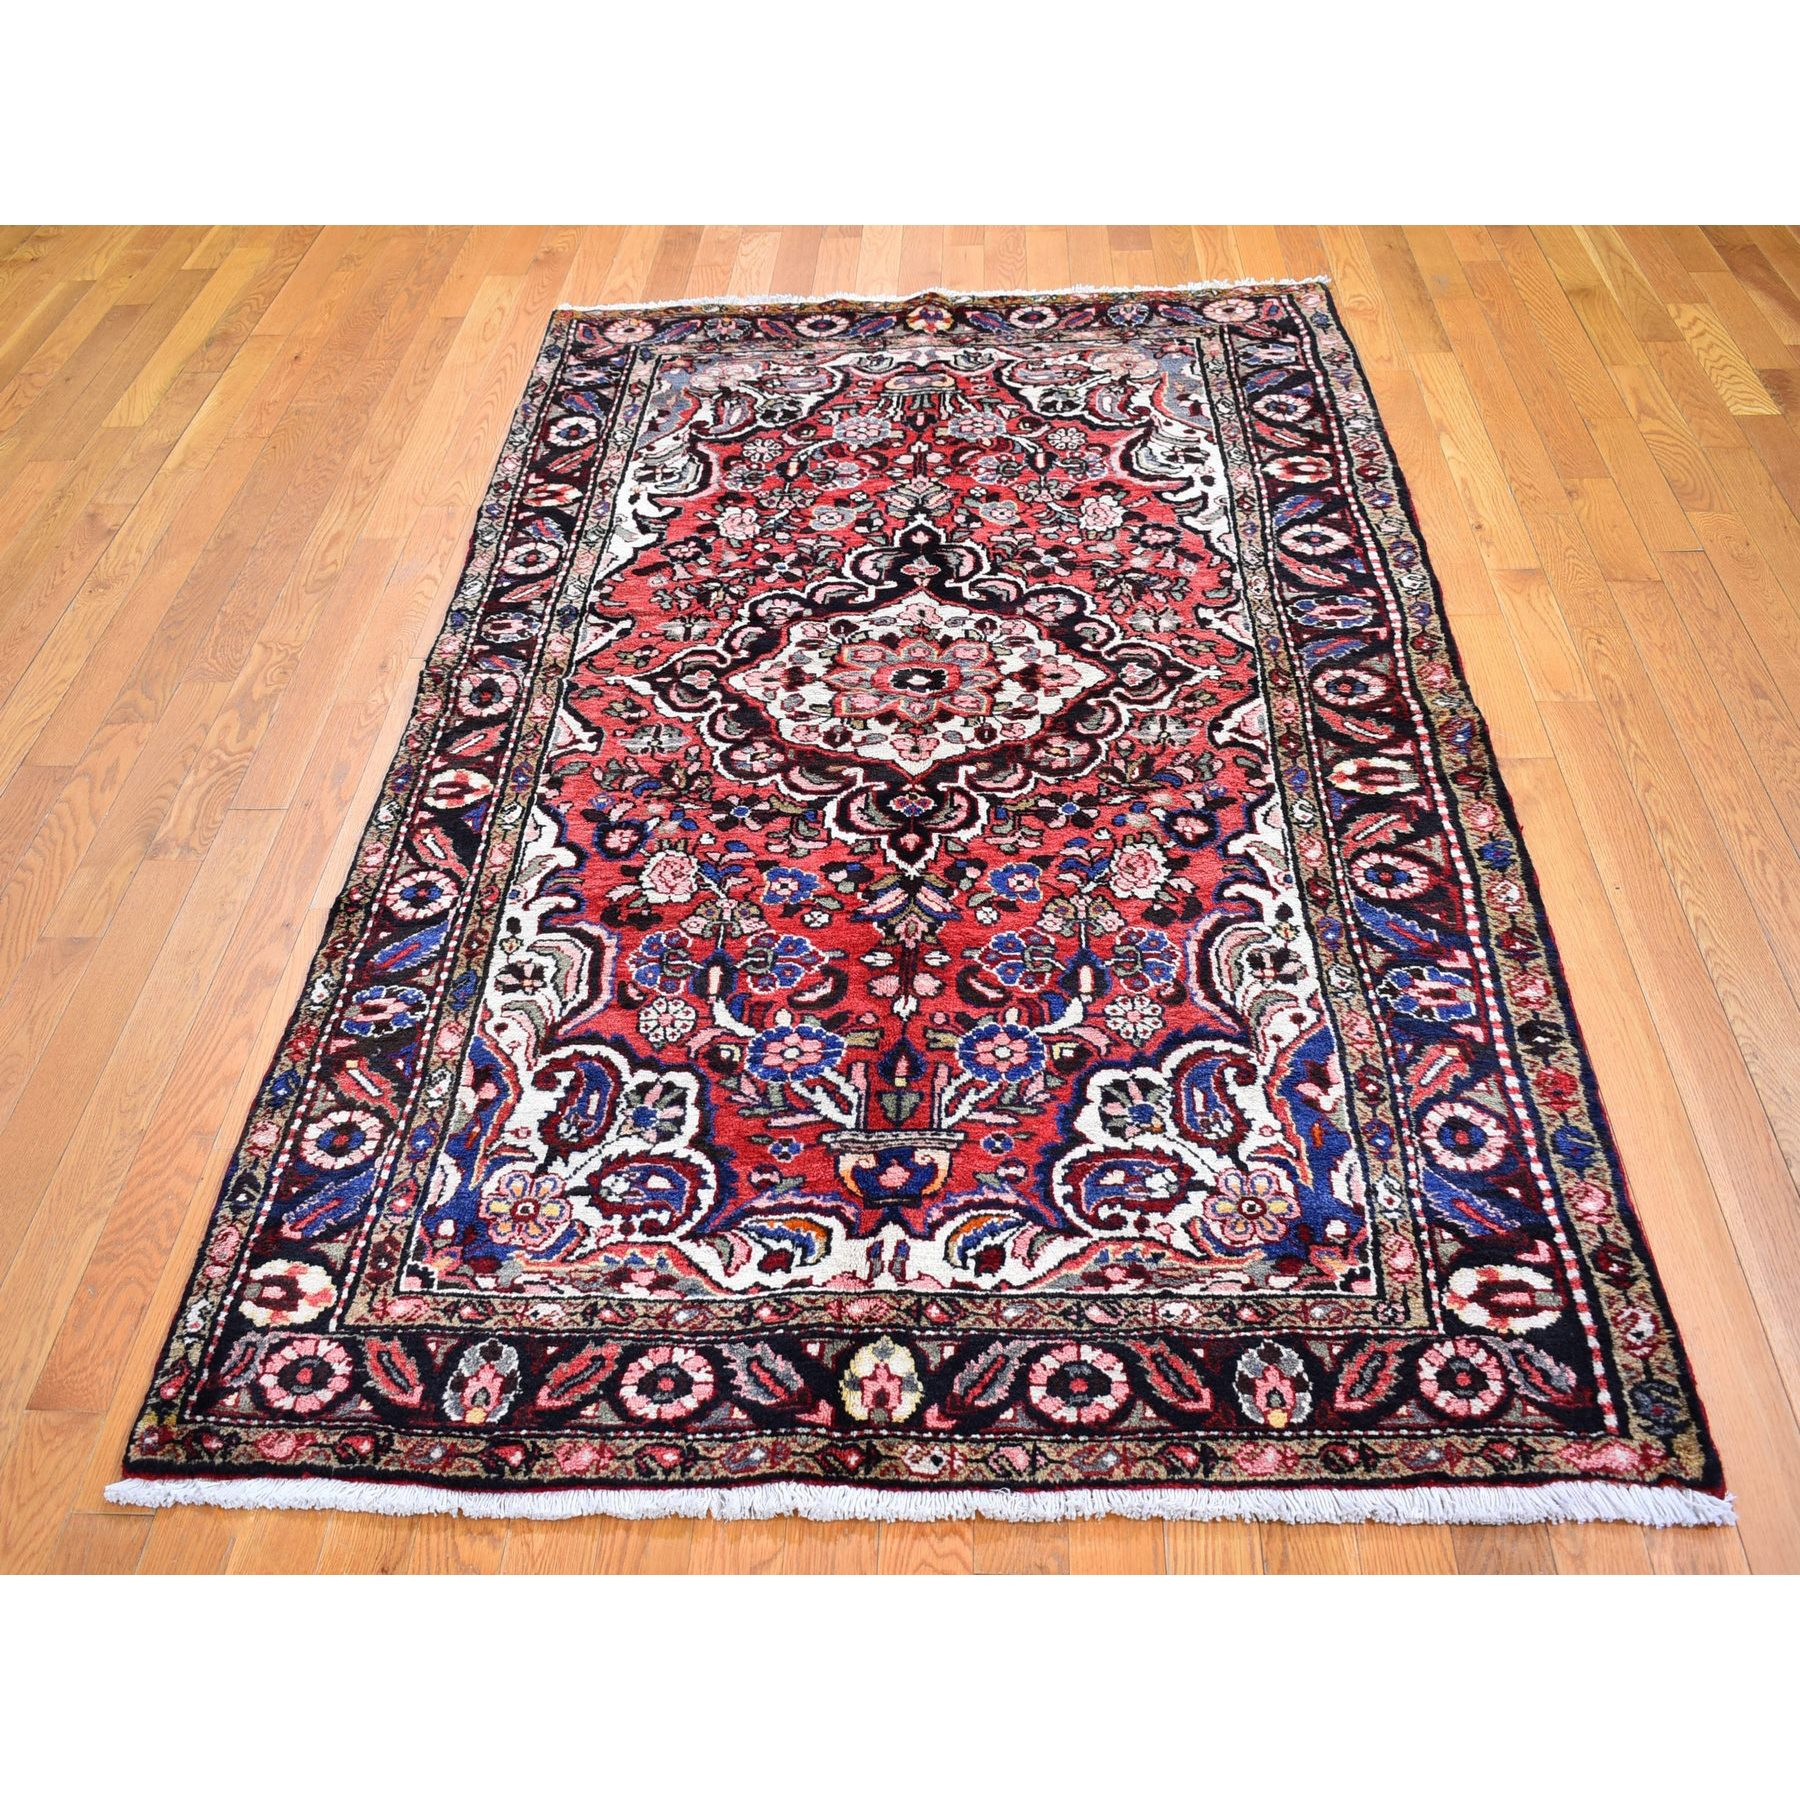 """4'9""""x8' Red Old Persian Lilihan Flower Design Hand Knotted Organic Wool Oriental Rug"""